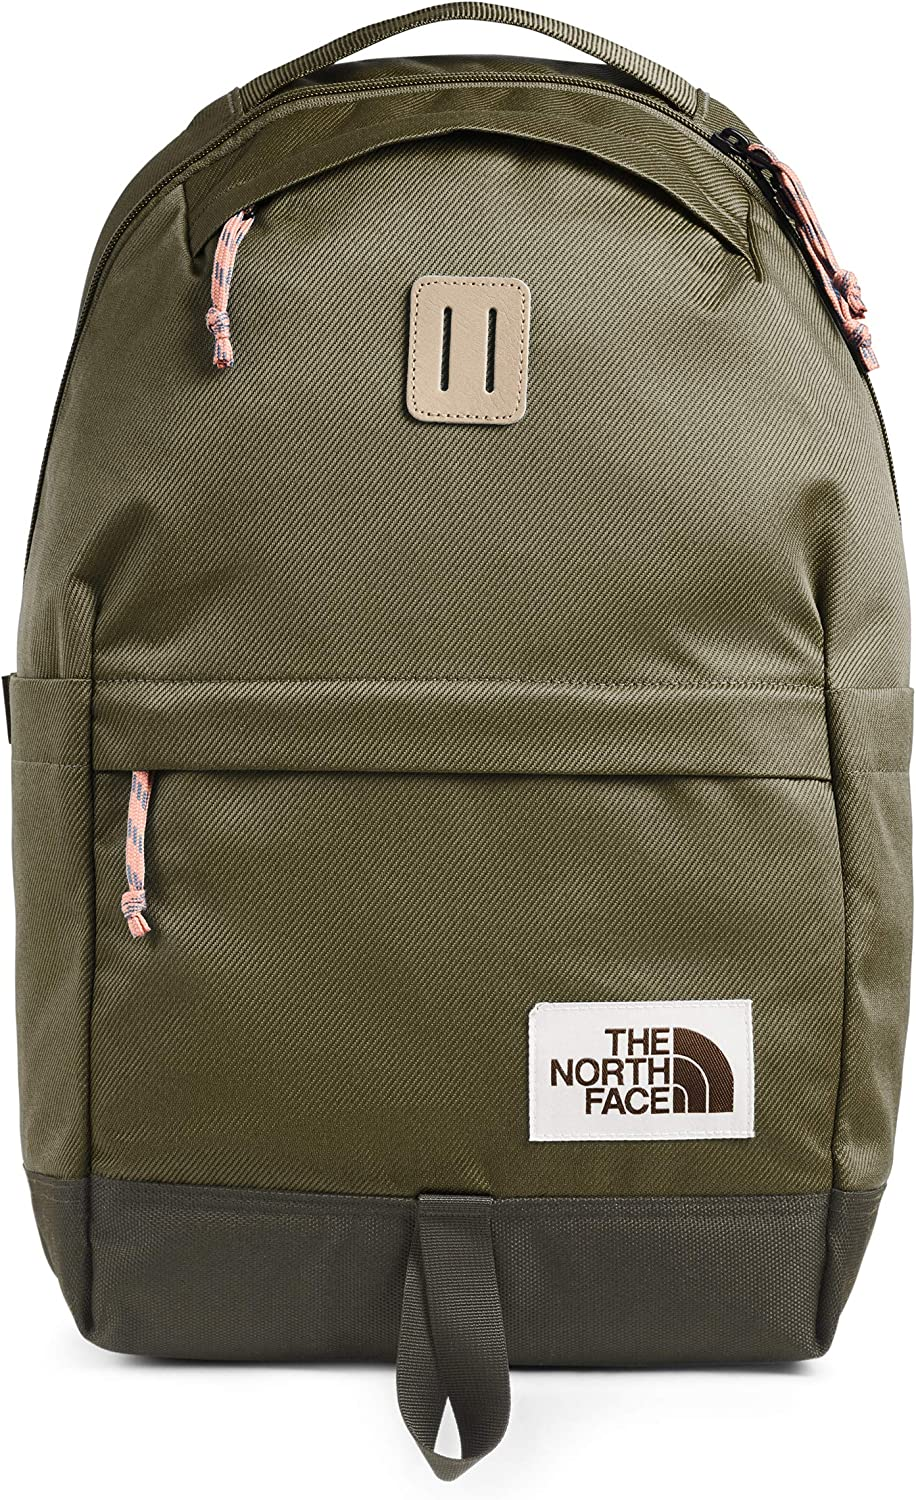 The North Face Daypack Burnt Olive Green/New Taupe Green One Size